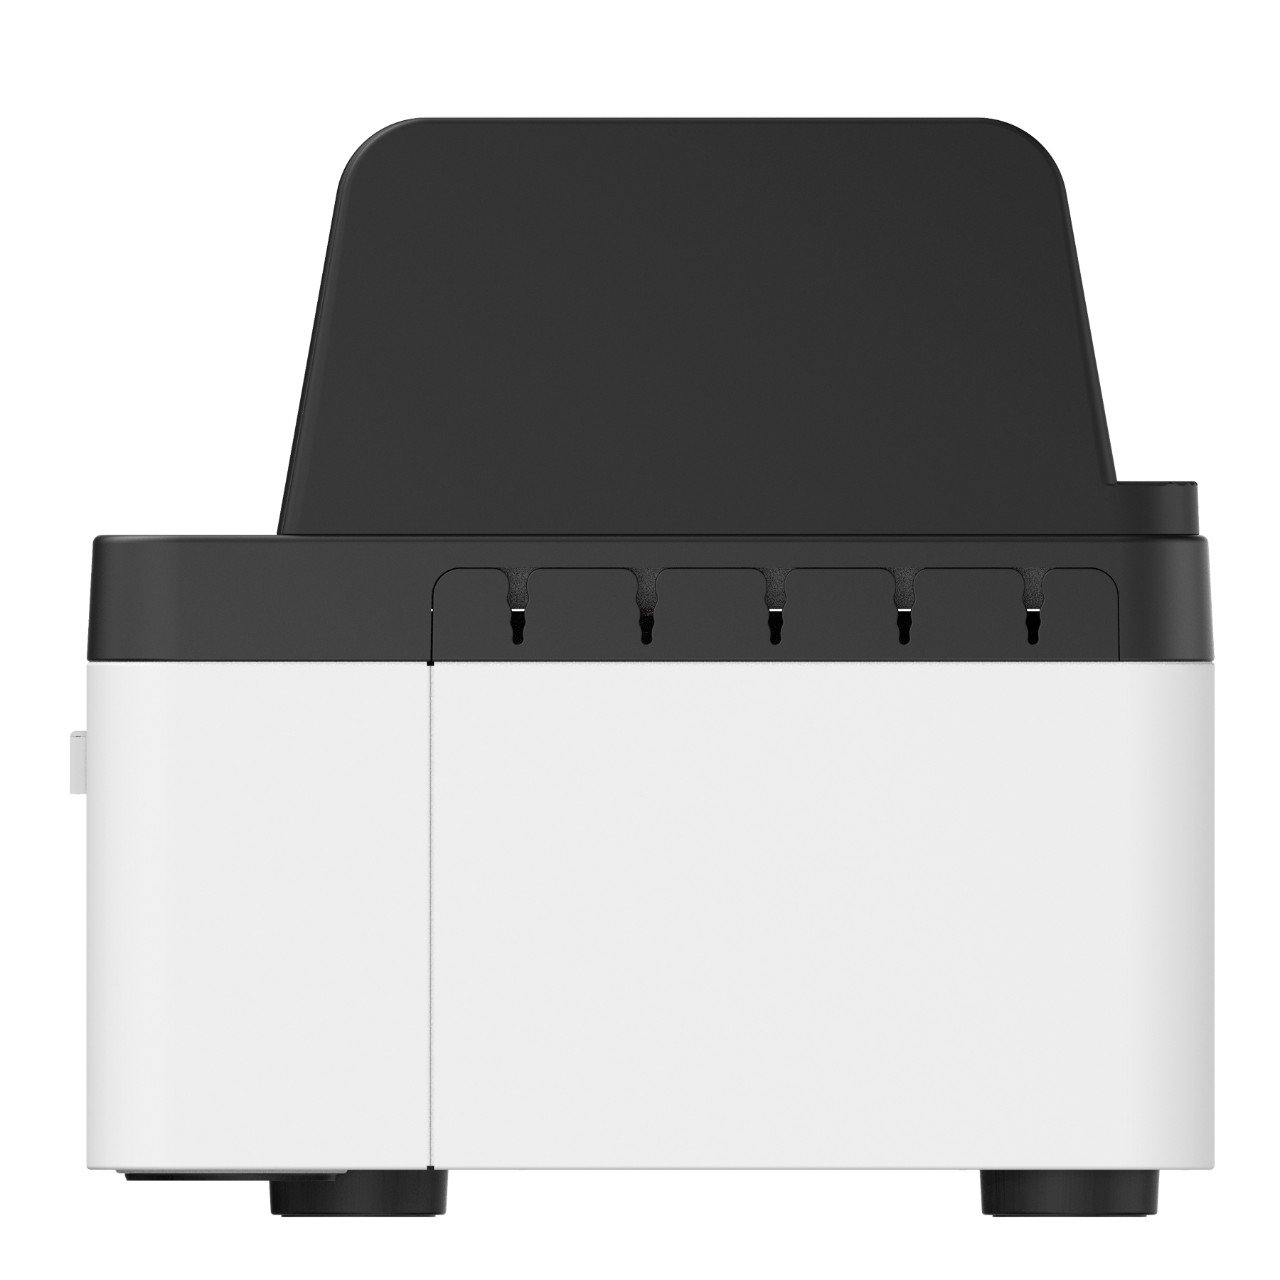 Belkin Store and Charge Go with Fixed Dividers - B2B141 by Belkin (Image #11)